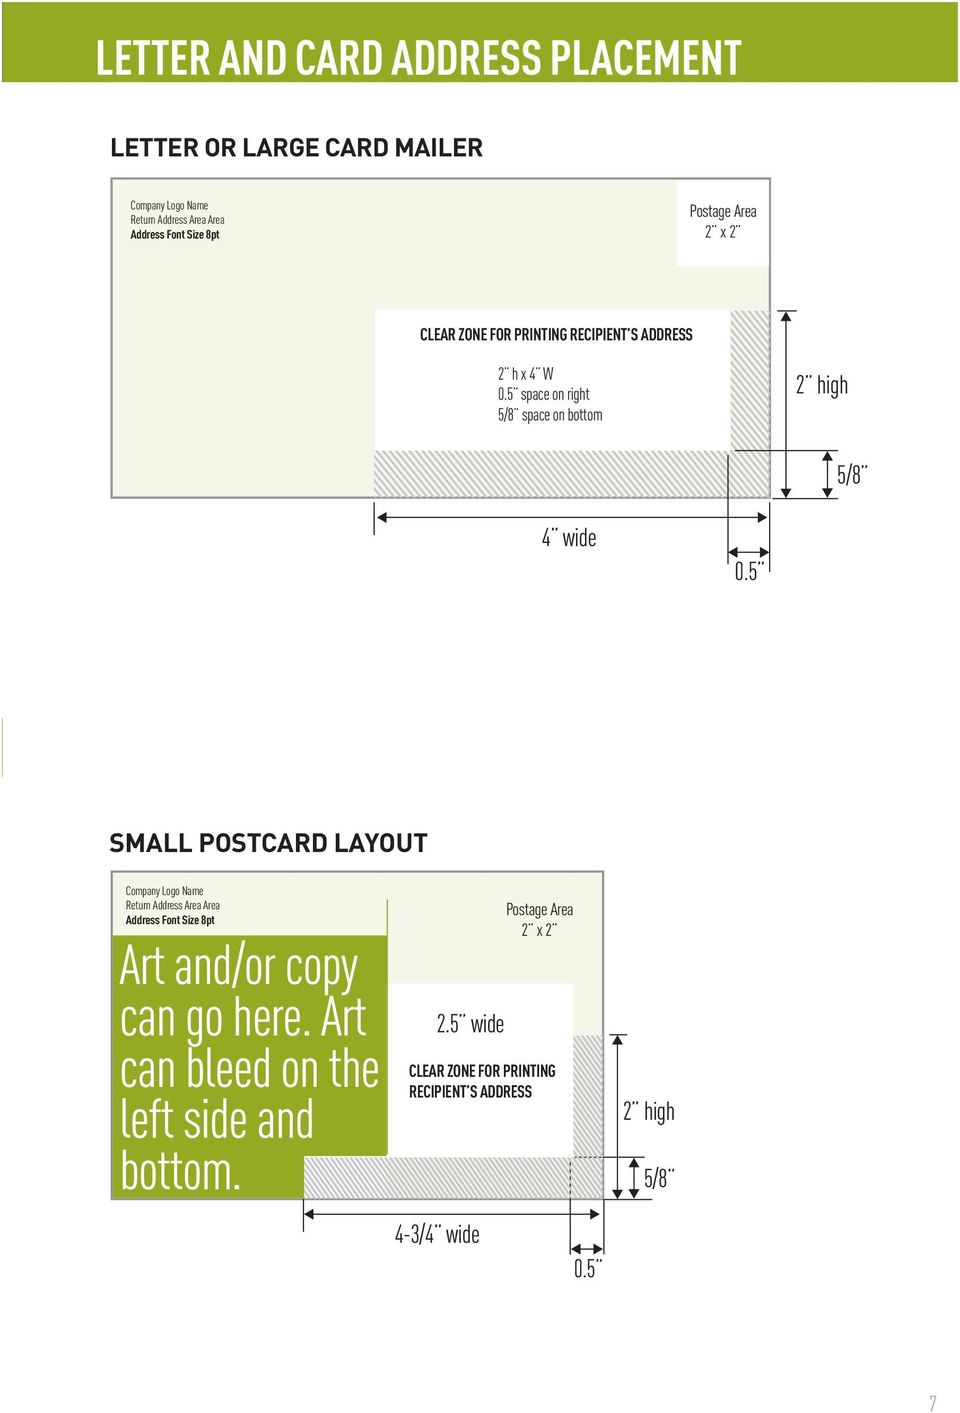 5 2 high 2 high 5/8 5/8 4 X 6 SMALL POSTCARD LAYOUT SAMPLE Return 4 X 6 area SMALL no more than POSTCARD 50% of length LAYOUT or 33% of height SAMPLE of mail piece SMALL Return area POSTCARD no more